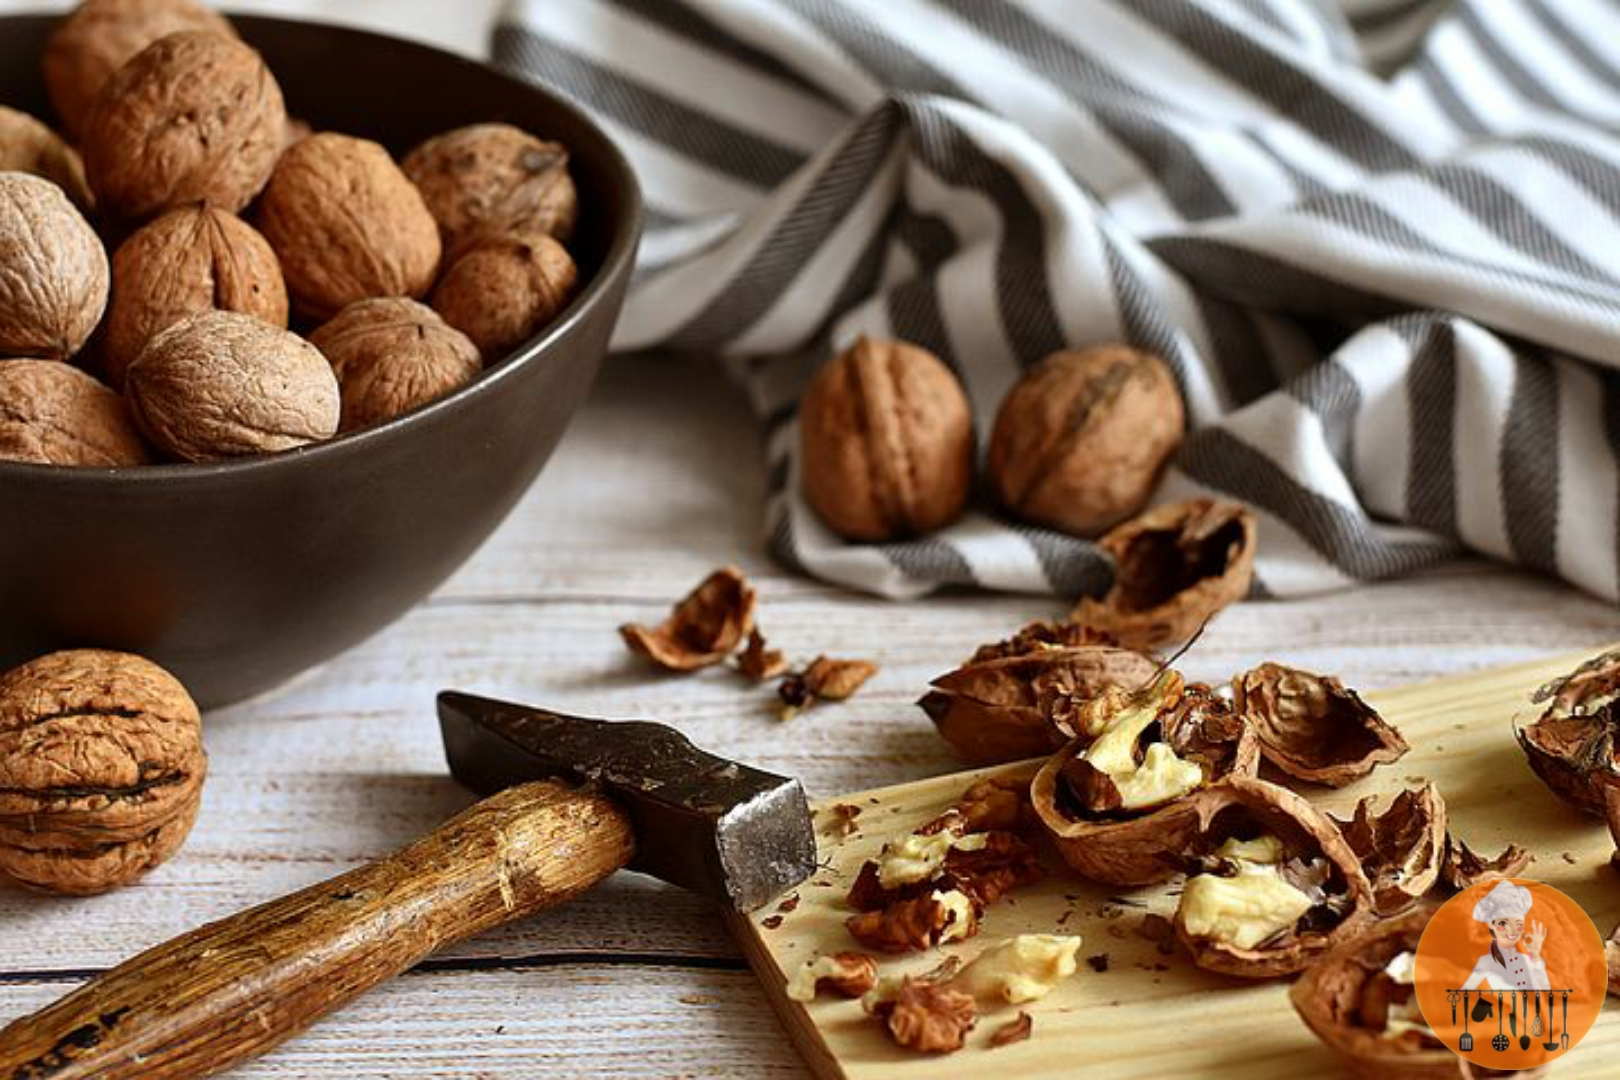 TOP 12 FOODS TO REDUCE HAIRFALL